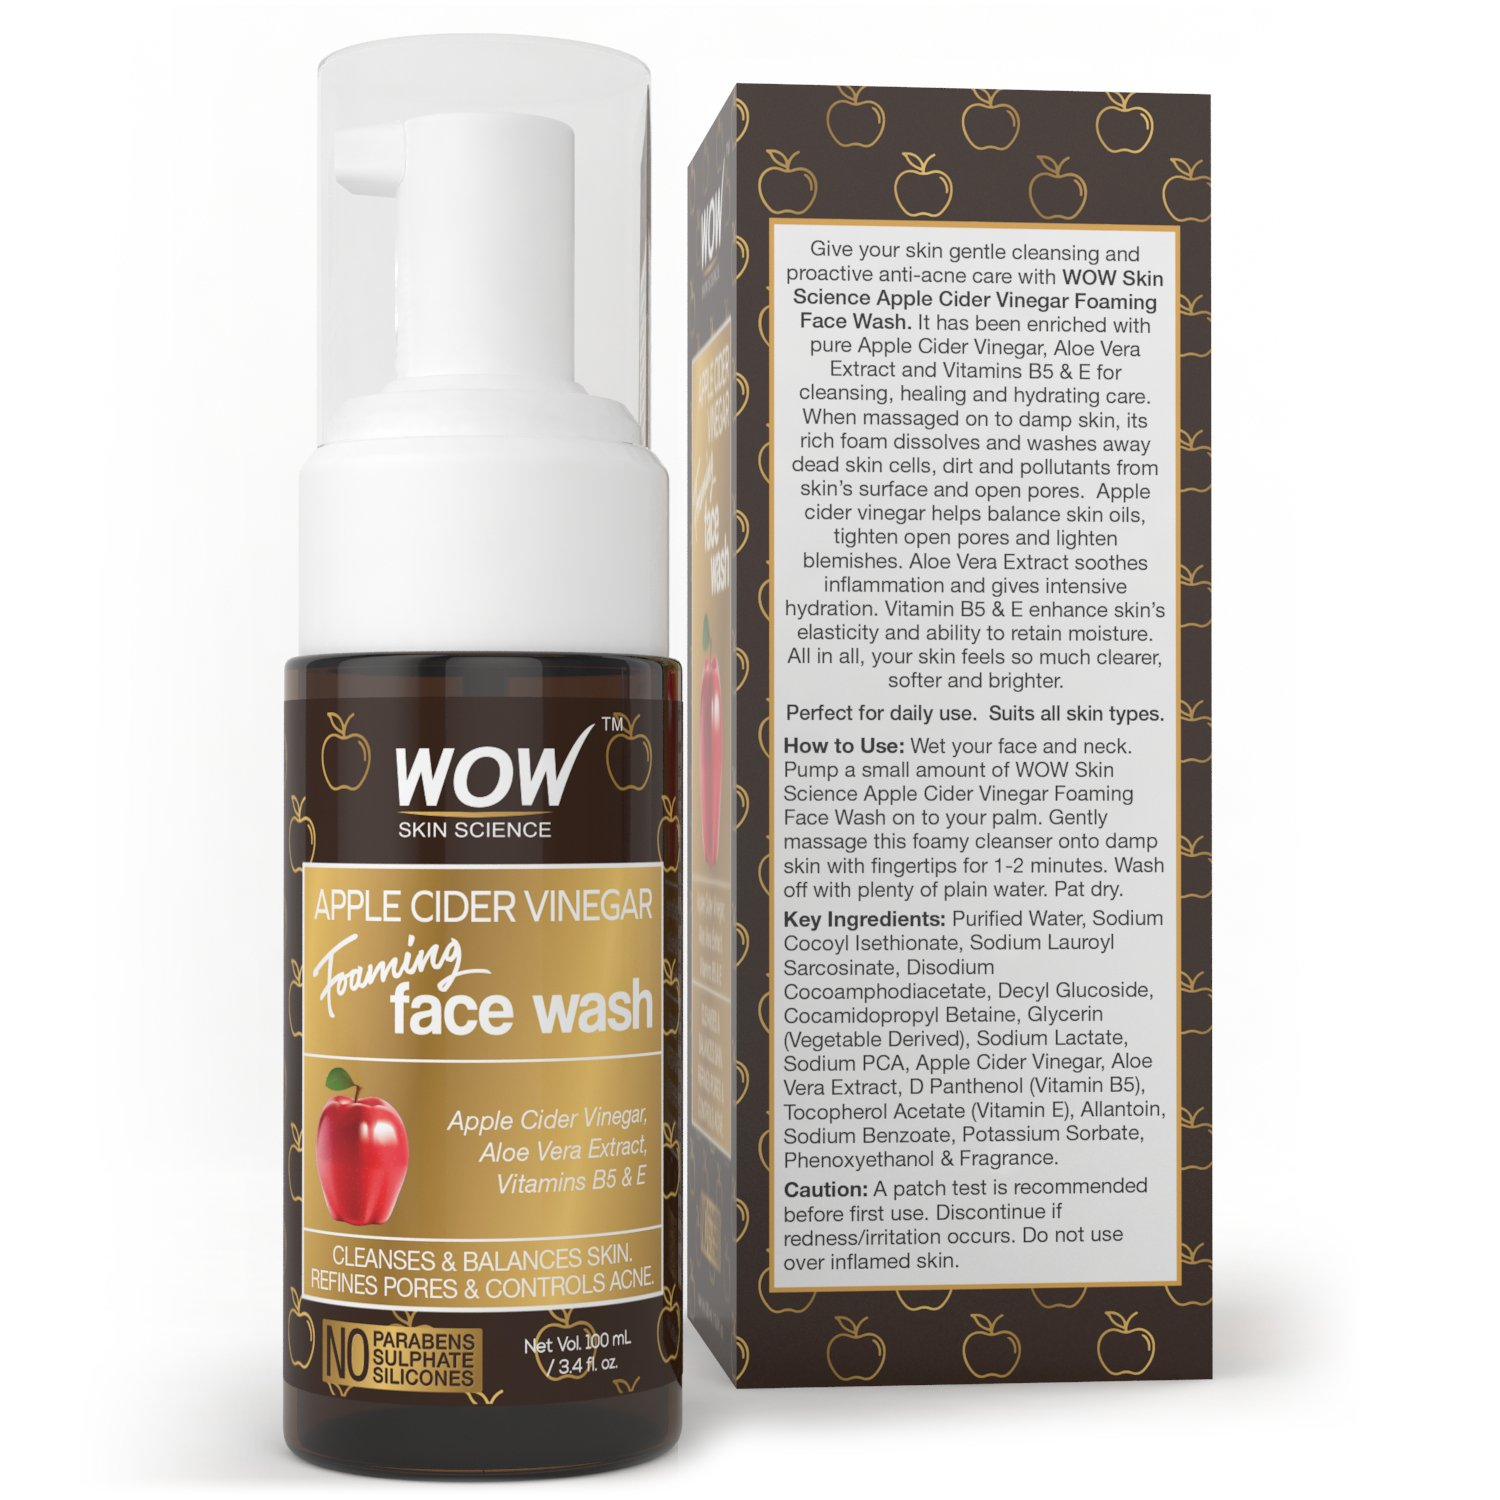 WOW Apple Cider Vinegar Foaming Face Wash Cleanser - Normal, Dry & Oily Skin - Heal, Hydrate For Soft, Clear Skin - Remove Dirt, Oil & Makeup, Reduce Acne Breakouts - Men & Women - All Ages - 100 mL by BUYWOW (Image #2)